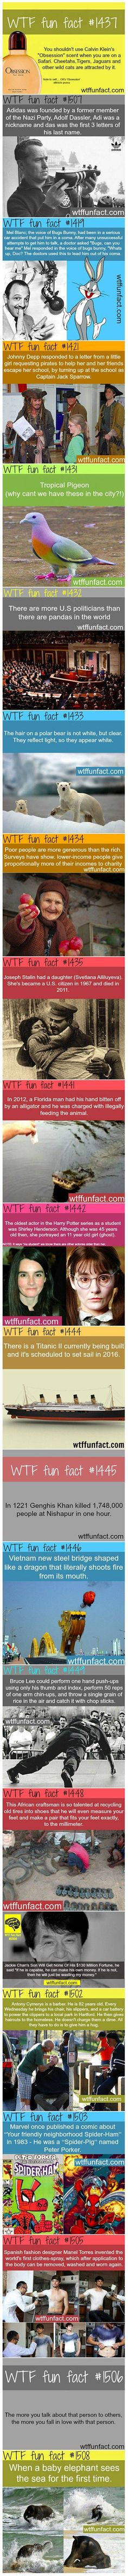 """Here are some fun and interesting facts you will not believe are true. Sorry for  the """"wtf"""" :/"""